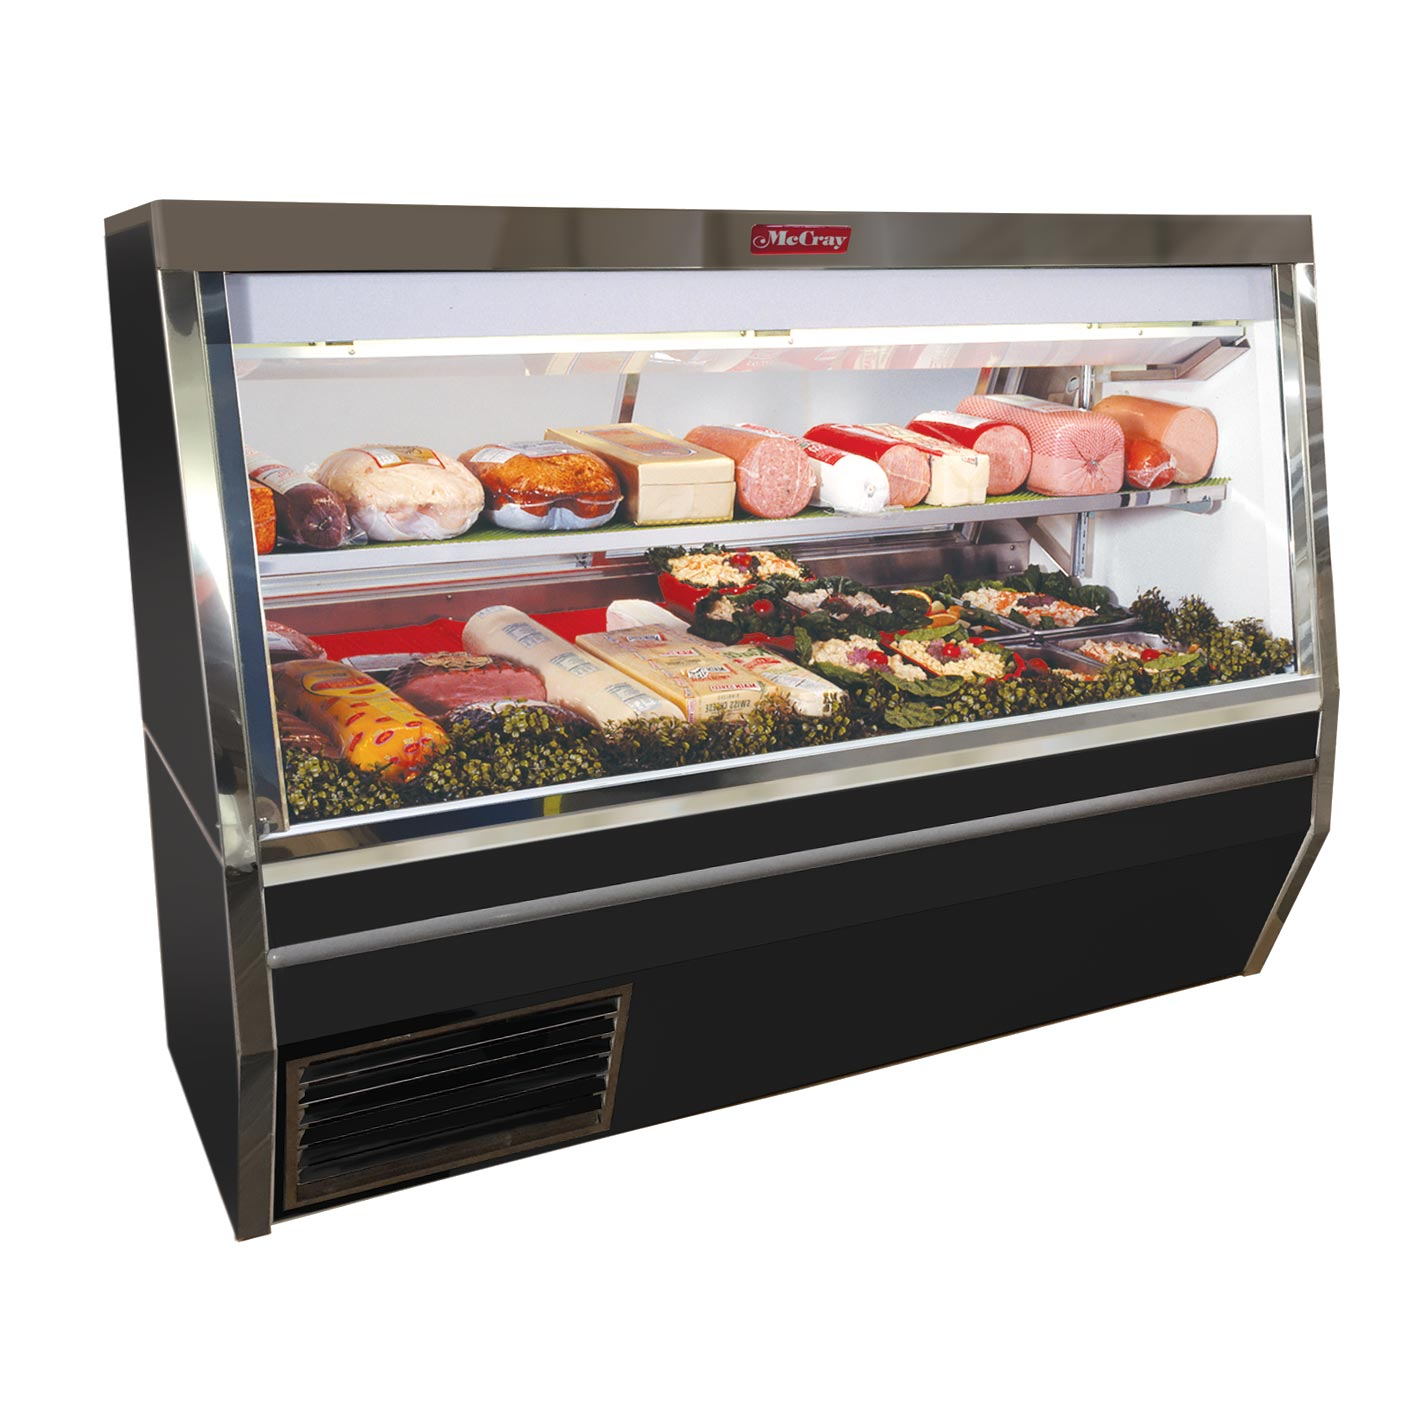 Howard-McCray SC-CDS34N-4-BE-LED display case, refrigerated deli